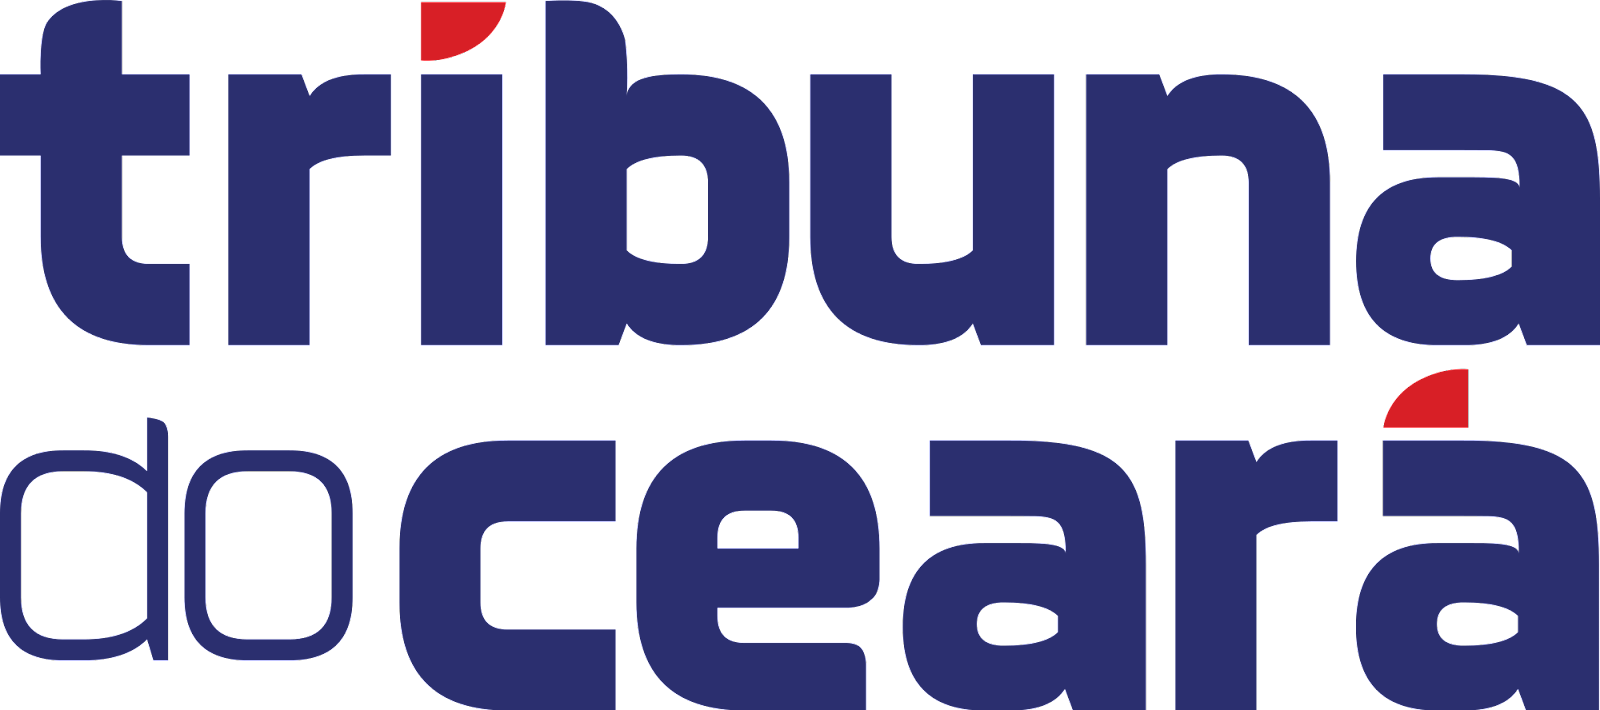 Tribuna_do_Ceará_wordmark.svg.png